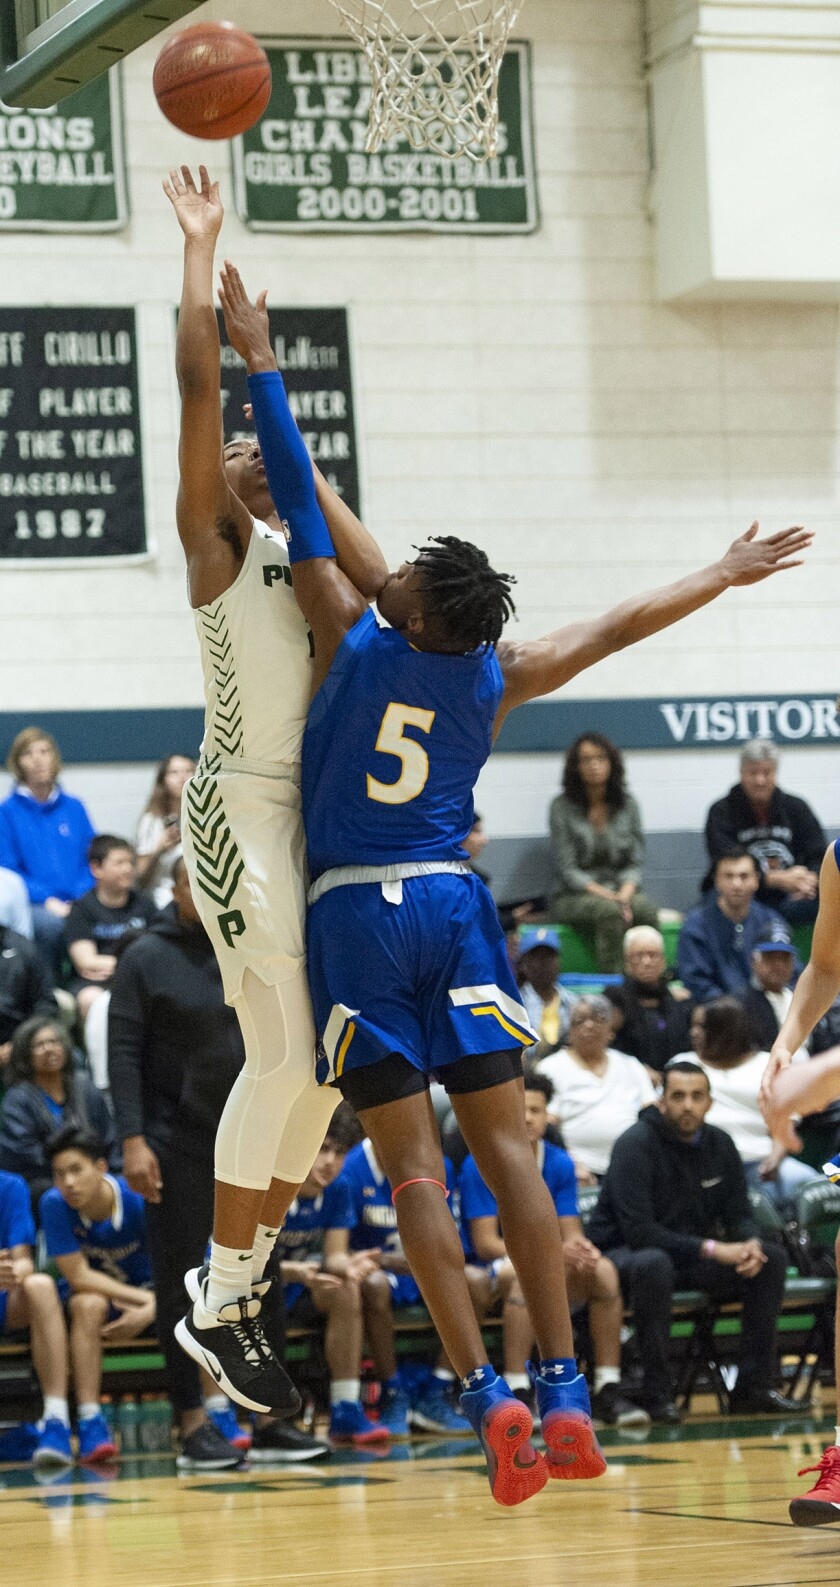 Providence's A'Jahni Levias puts the ball up over Fountain Valley's Jermiah Davis during CIF State Division III Southern California Regional semifinal at Providence High. (Photo by Miguel Vasconcellos)